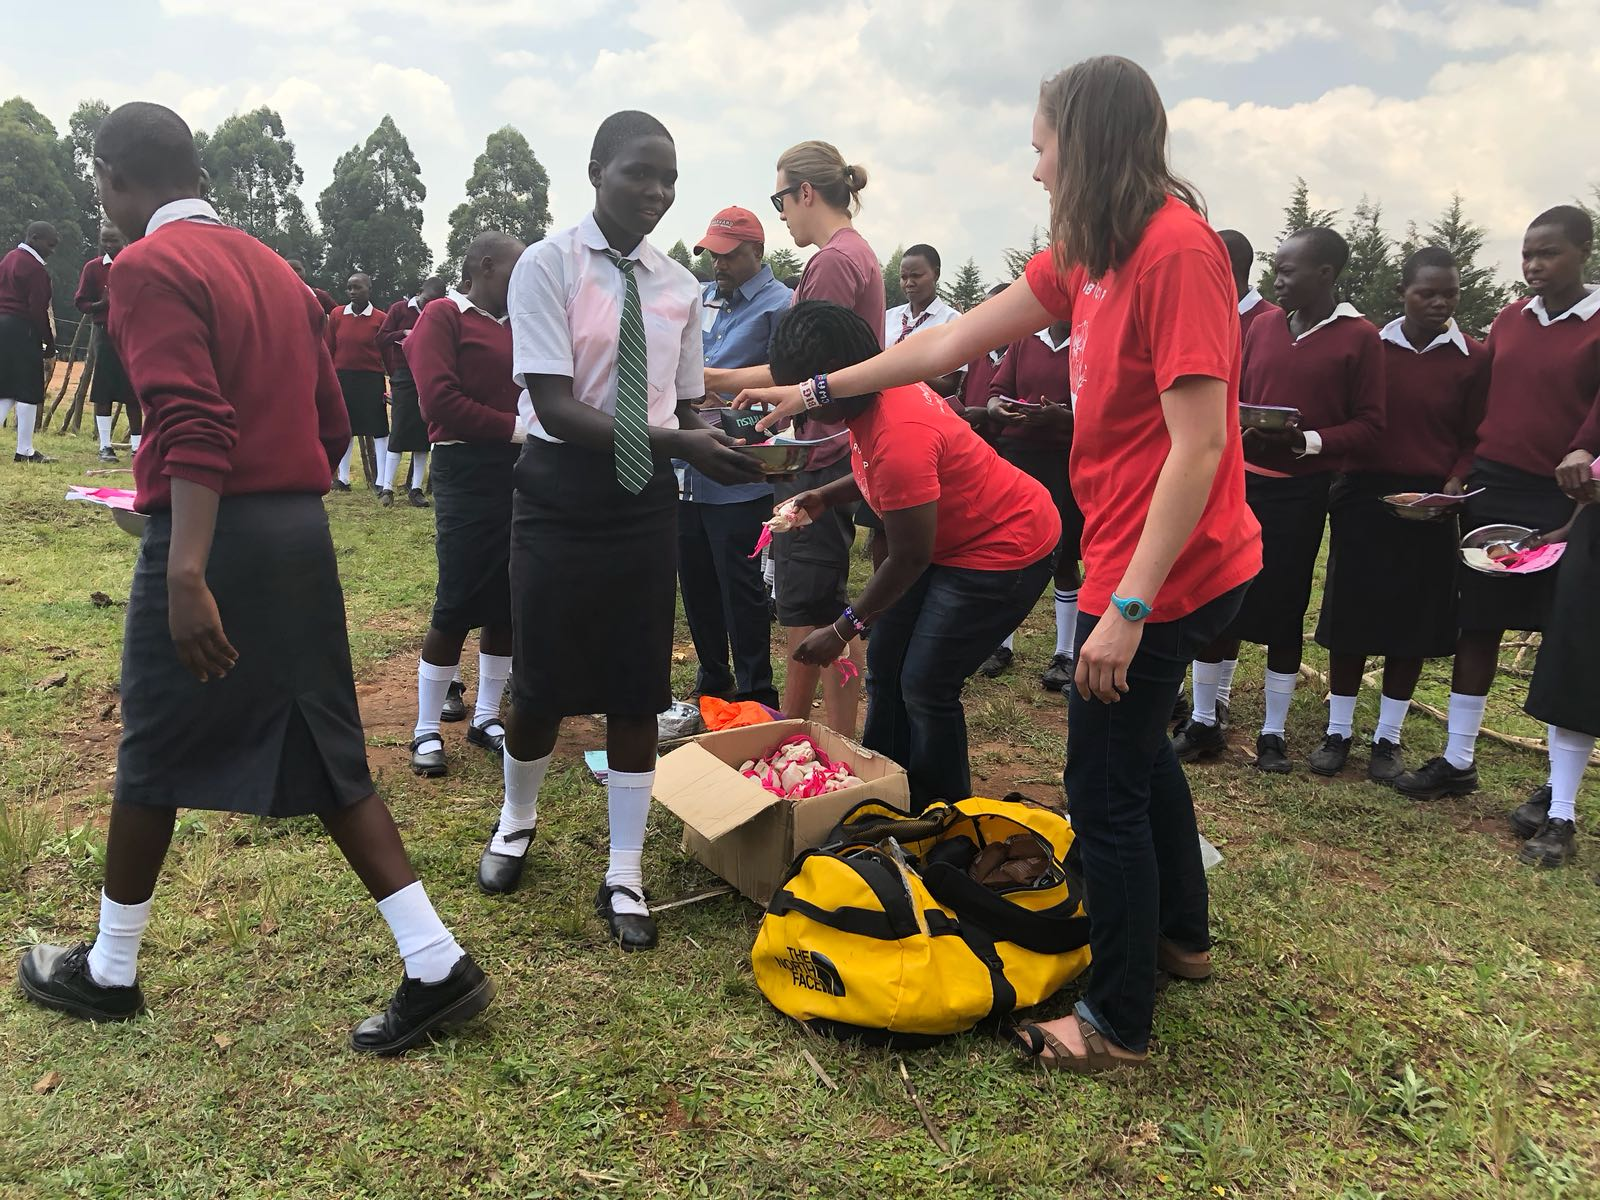 Members of the Cross World Africa team (Kevin, Andrew, and Alyssa) distribute Rift Kits to girls at Shoe4Africa Martin Lel School with Golda of the Golden Girls Foundation.